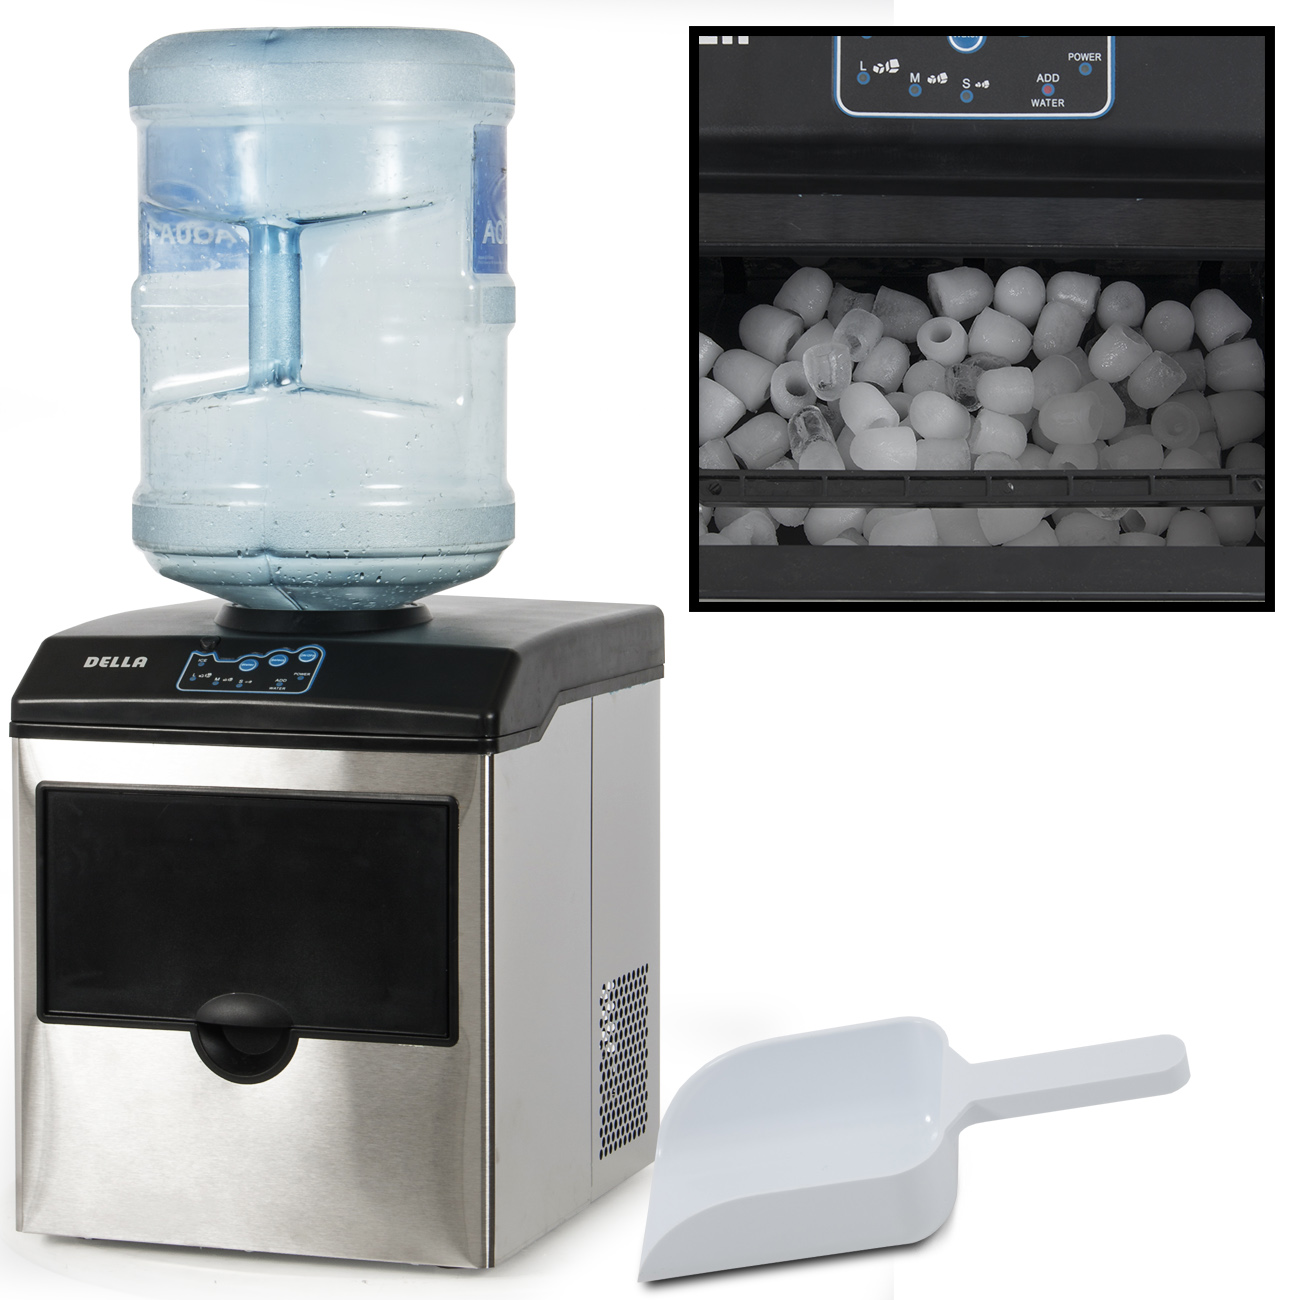 Countertop Ice Makers | eBay